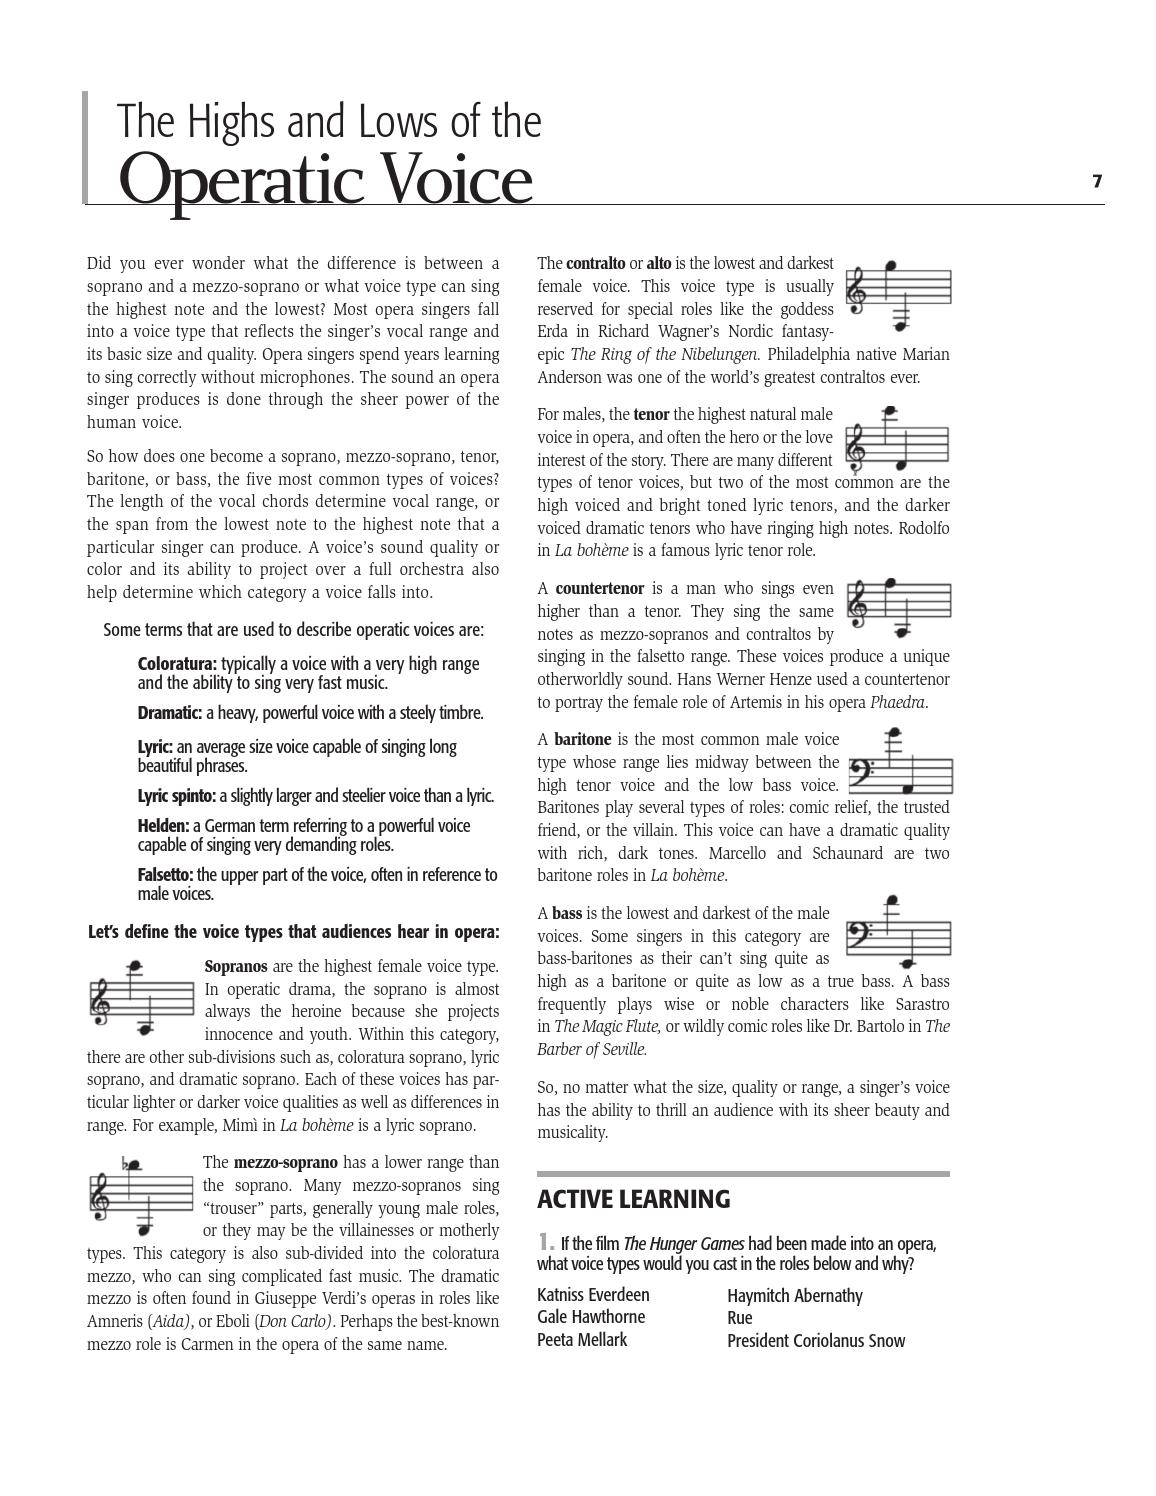 LA BOHEME Student Guide 2012 | Opera Company of Philadelphia by